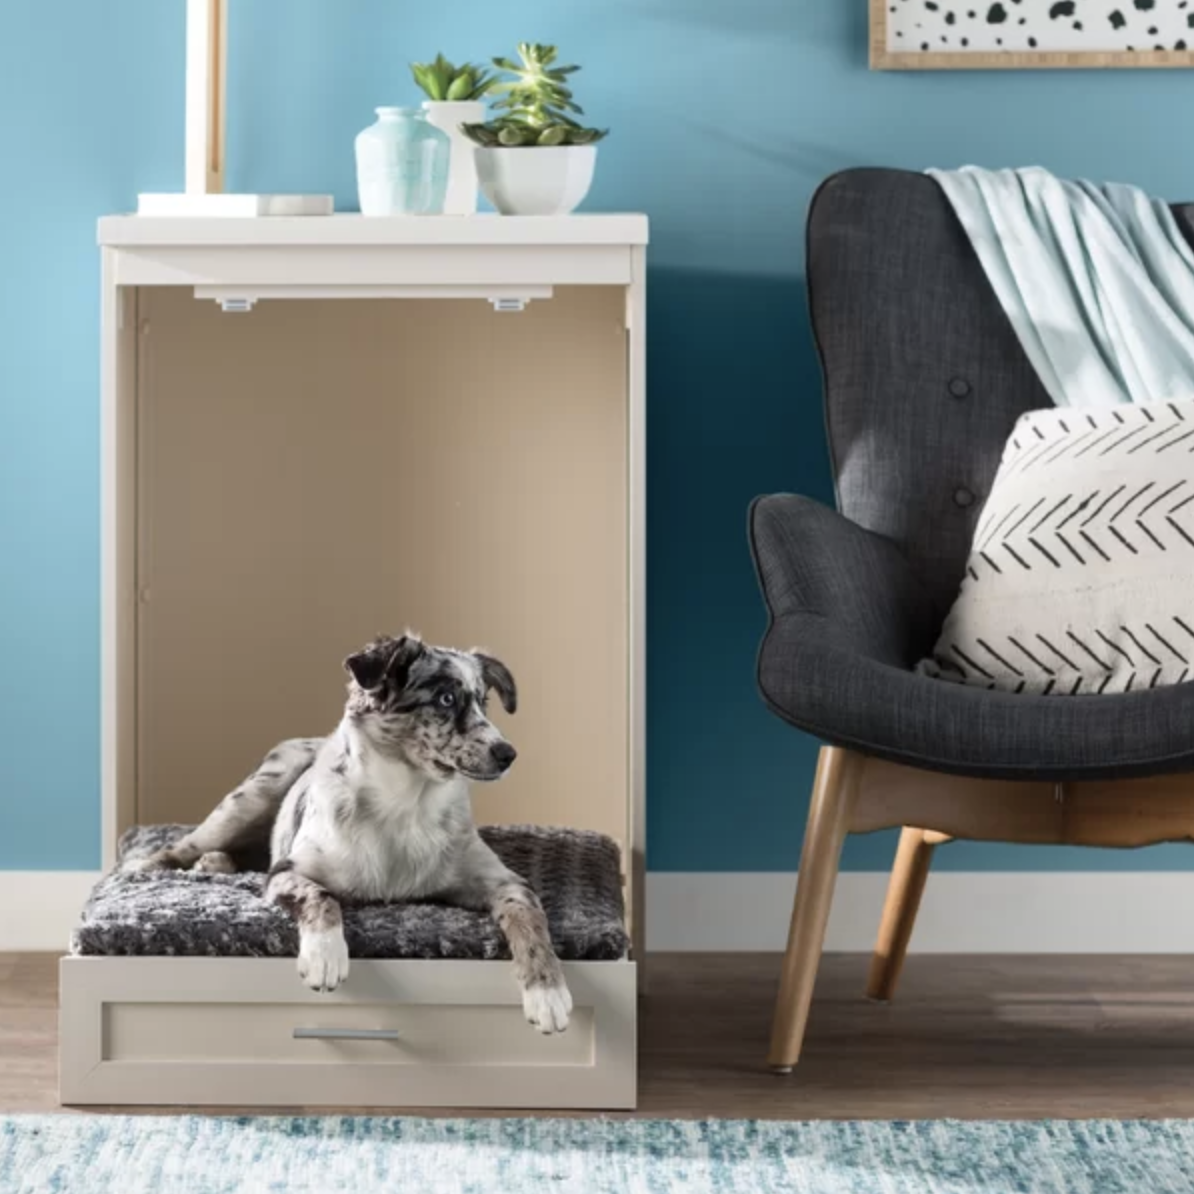 Trying to Save Some Space? Your Dog Should Have Its Own Murphy Bed